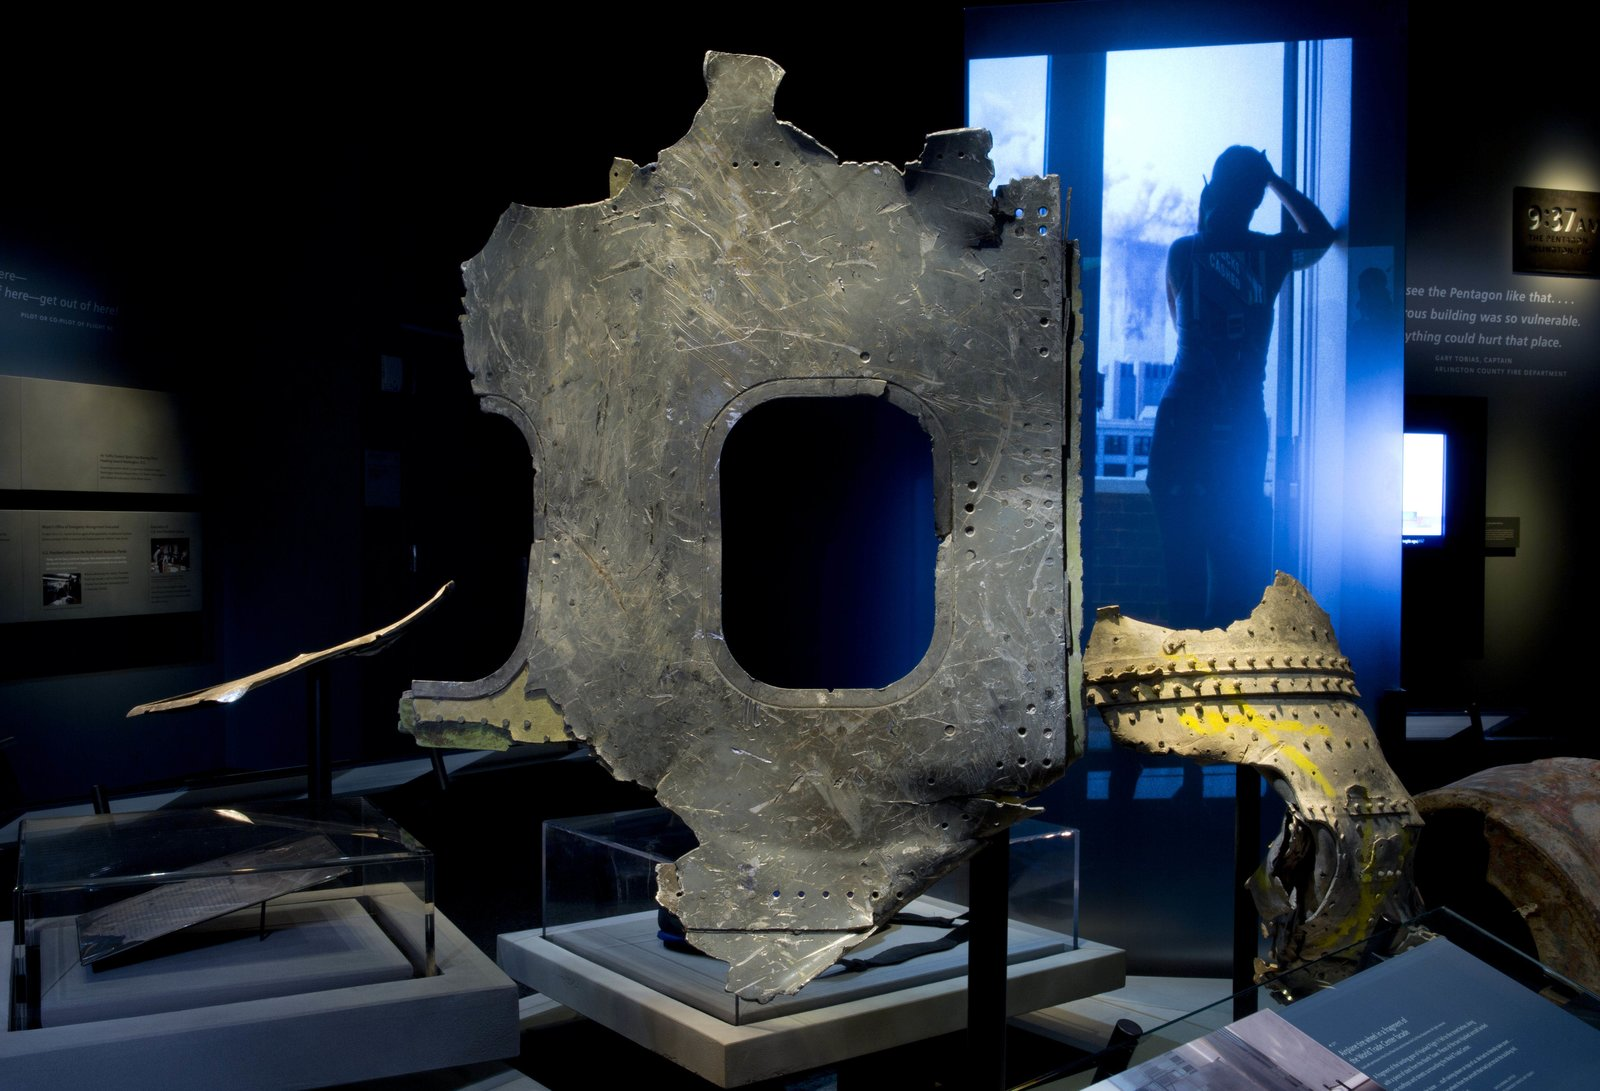 Airplaine wreckage on display in the historical exhibit. Photo by Jin Lee.  Photo 11 of 14 in At Ground Zero Bedrock, the 9/11 Museum Prepares for Visitors